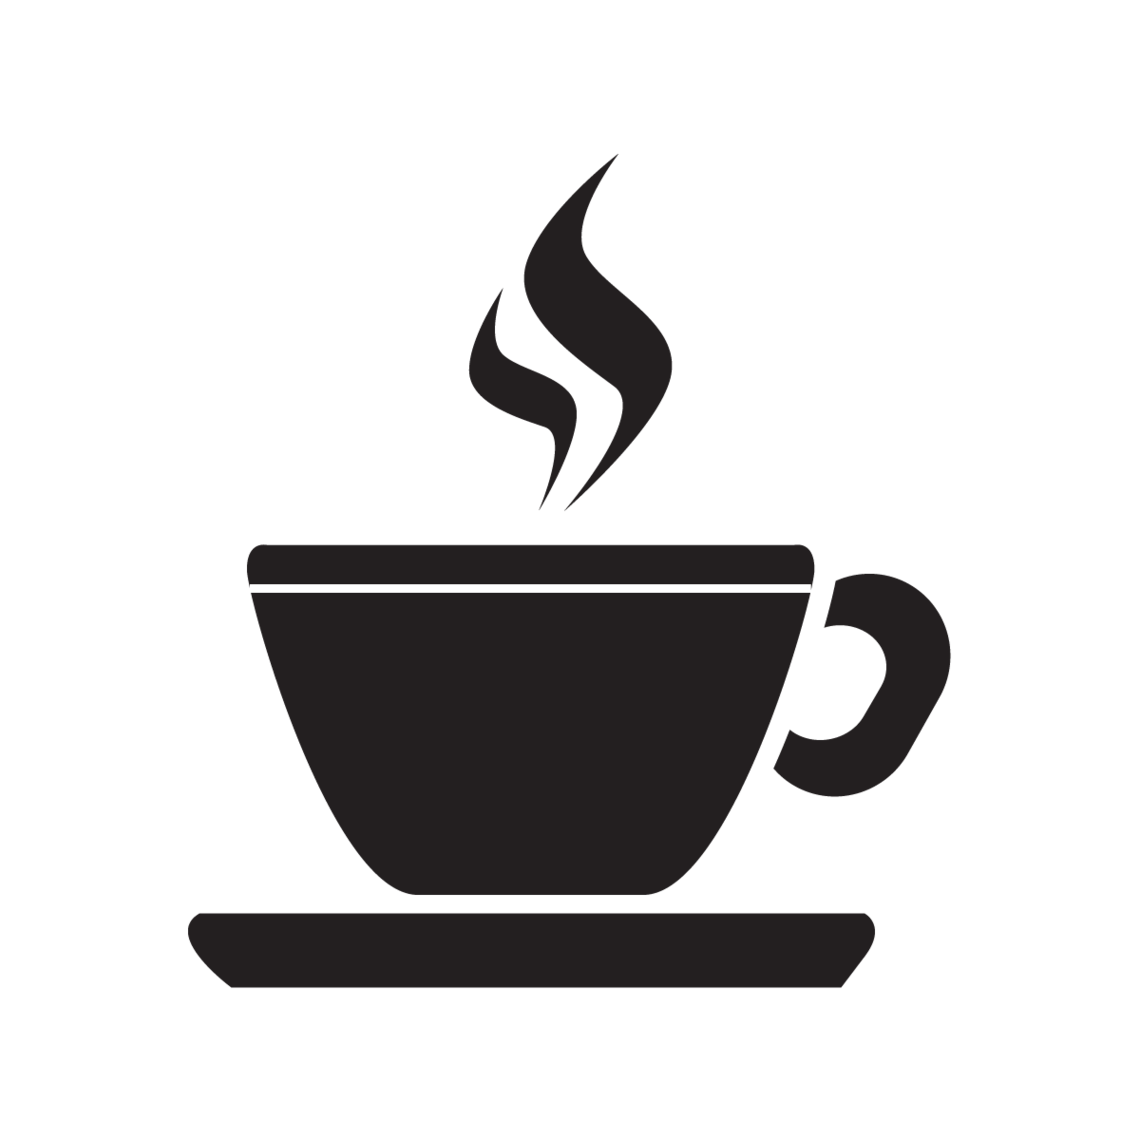 cafe logo png www pixshark com images galleries with a house vector icon house vector icon free